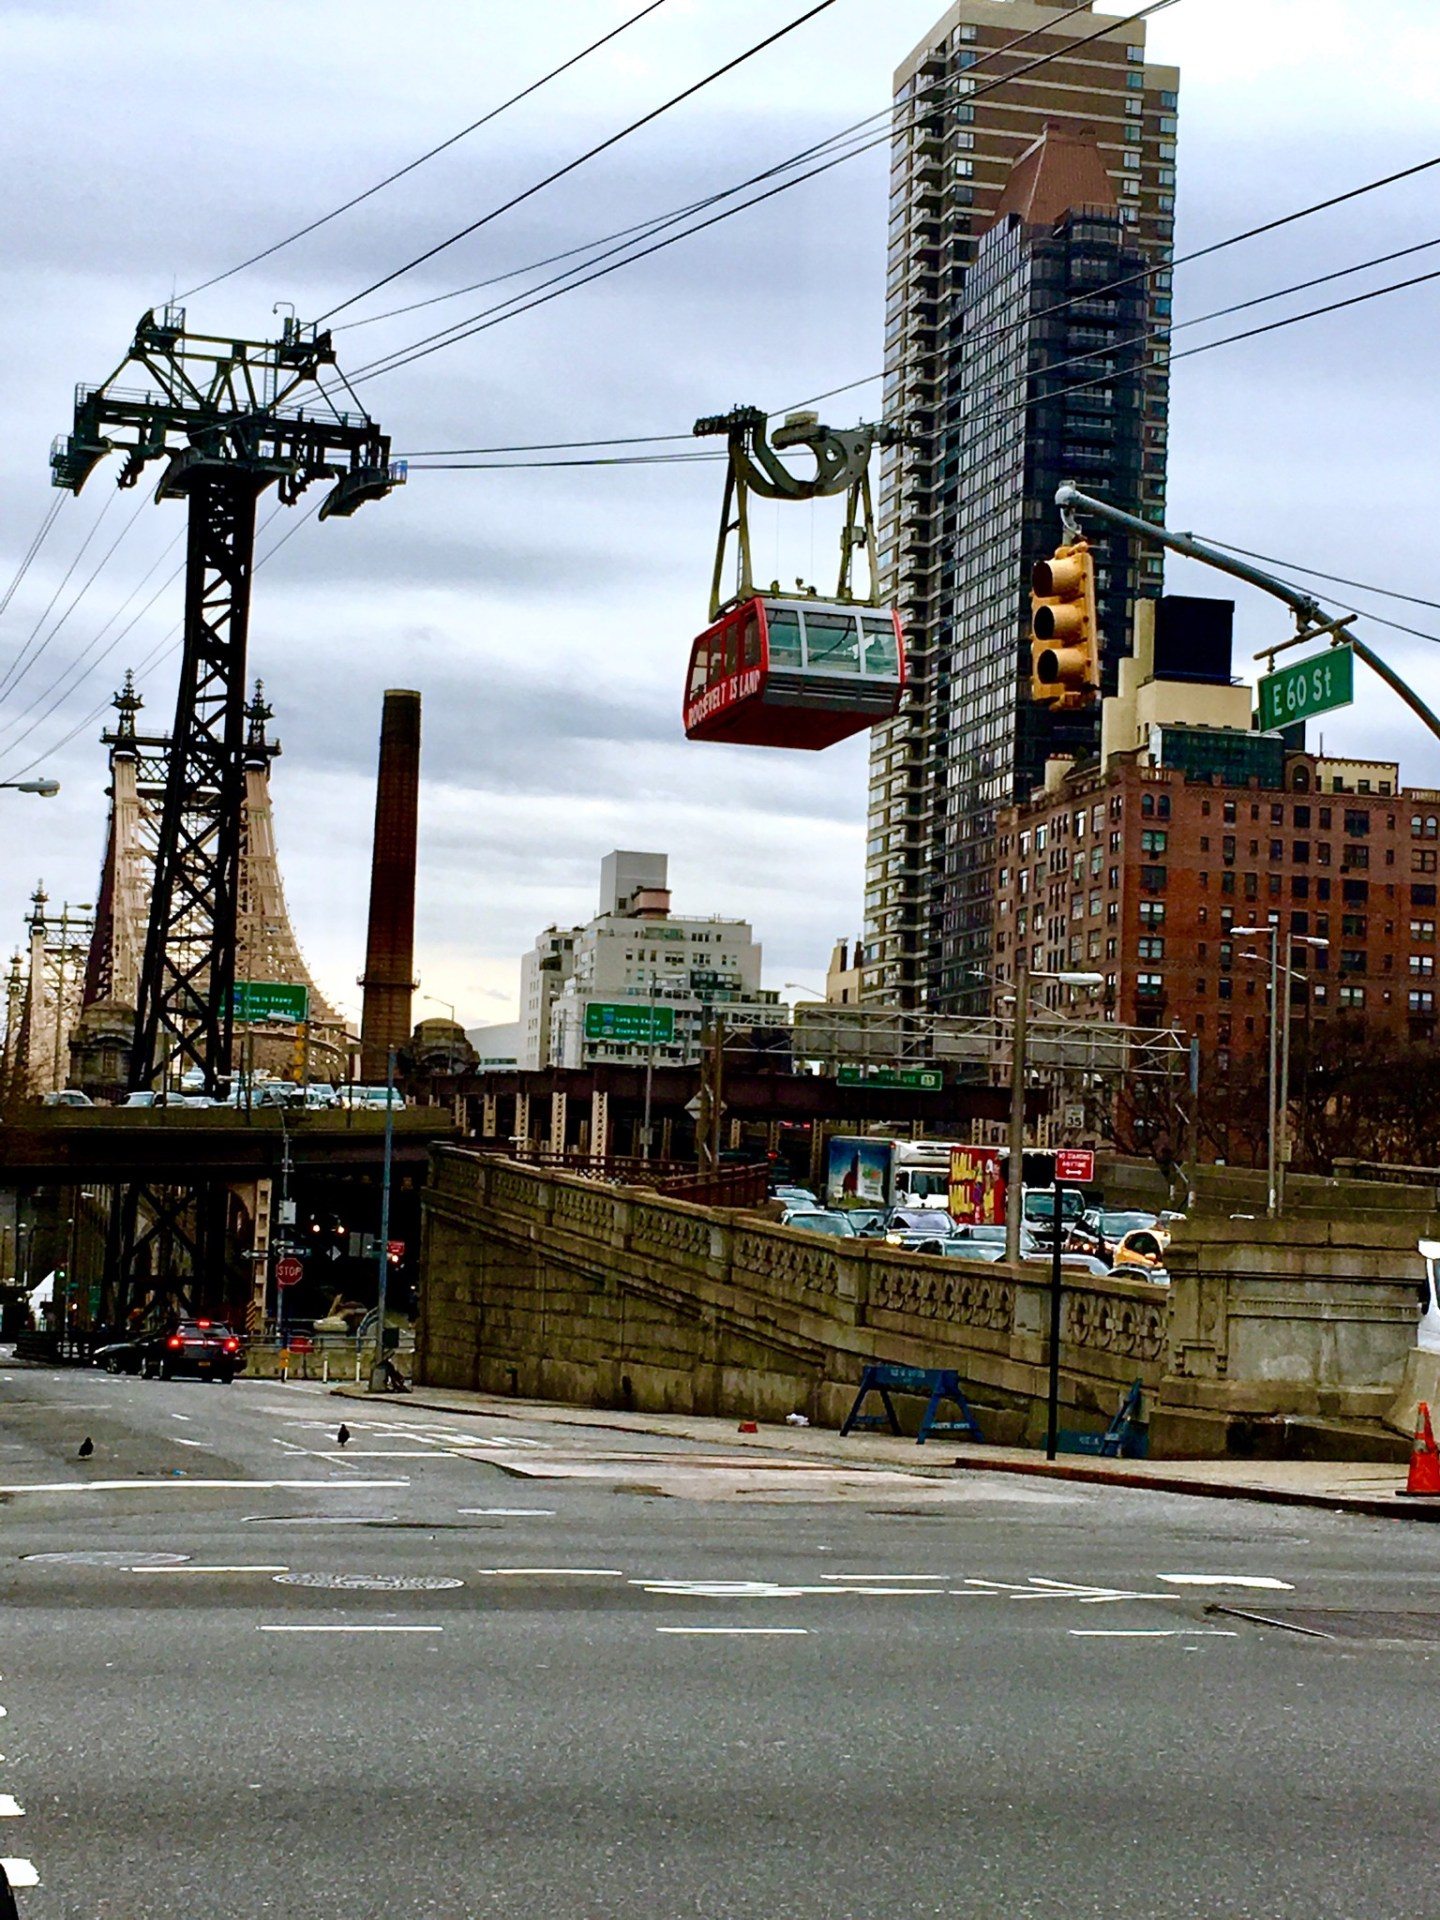 Everywhere, Always includes a ride on the Roosevelt Island Tramway